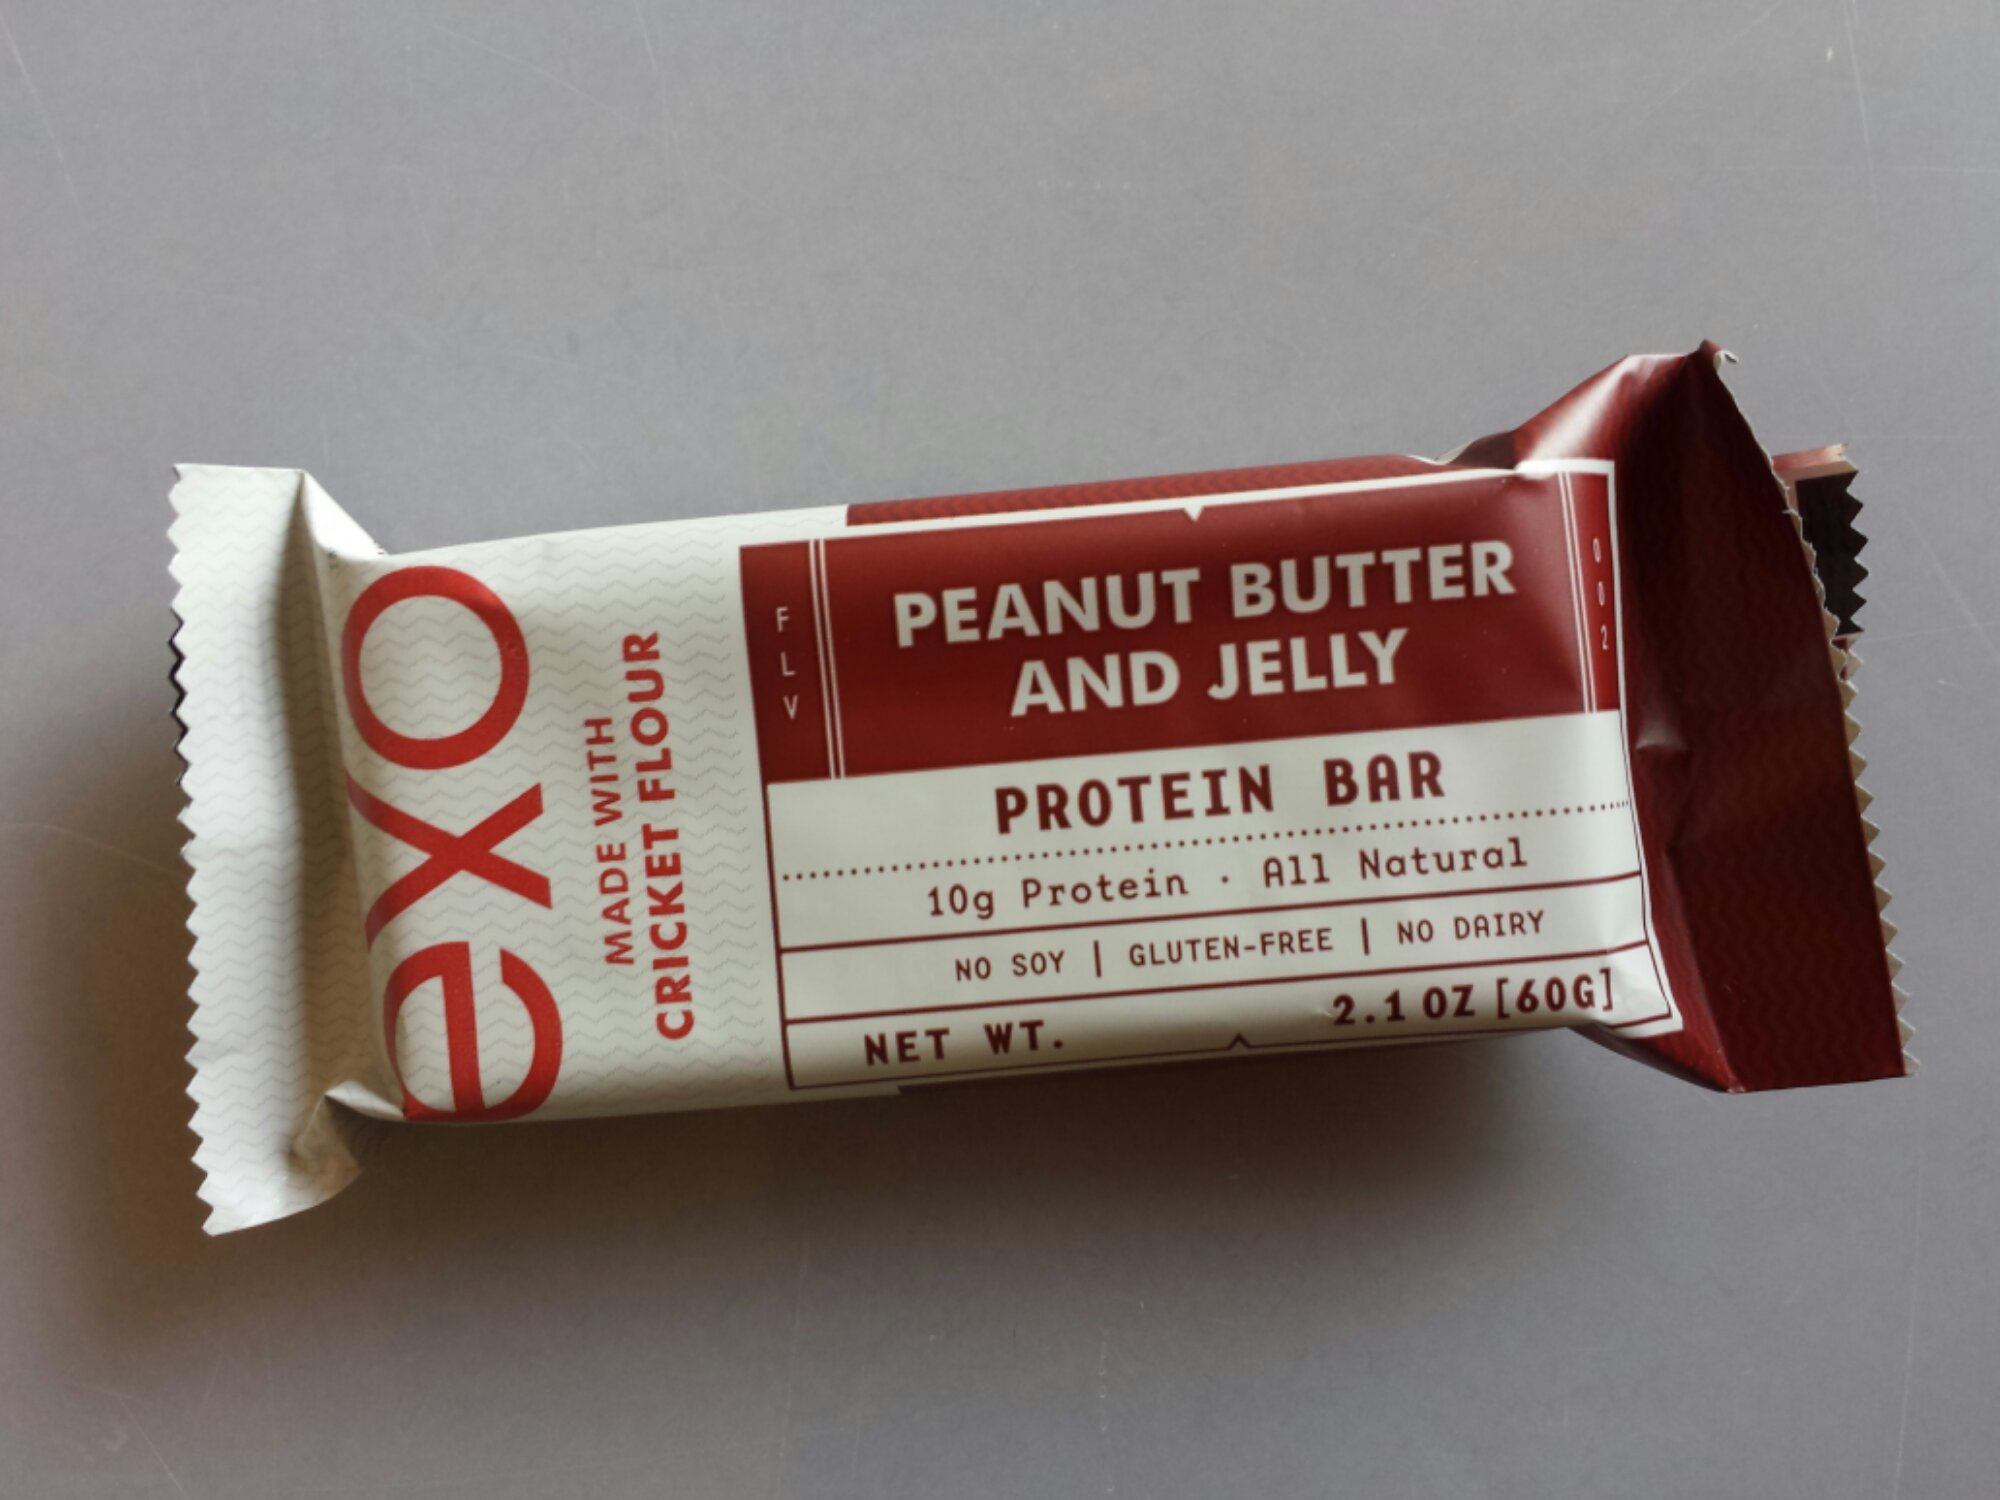 exo Peanut Butter and Jelly protein bar